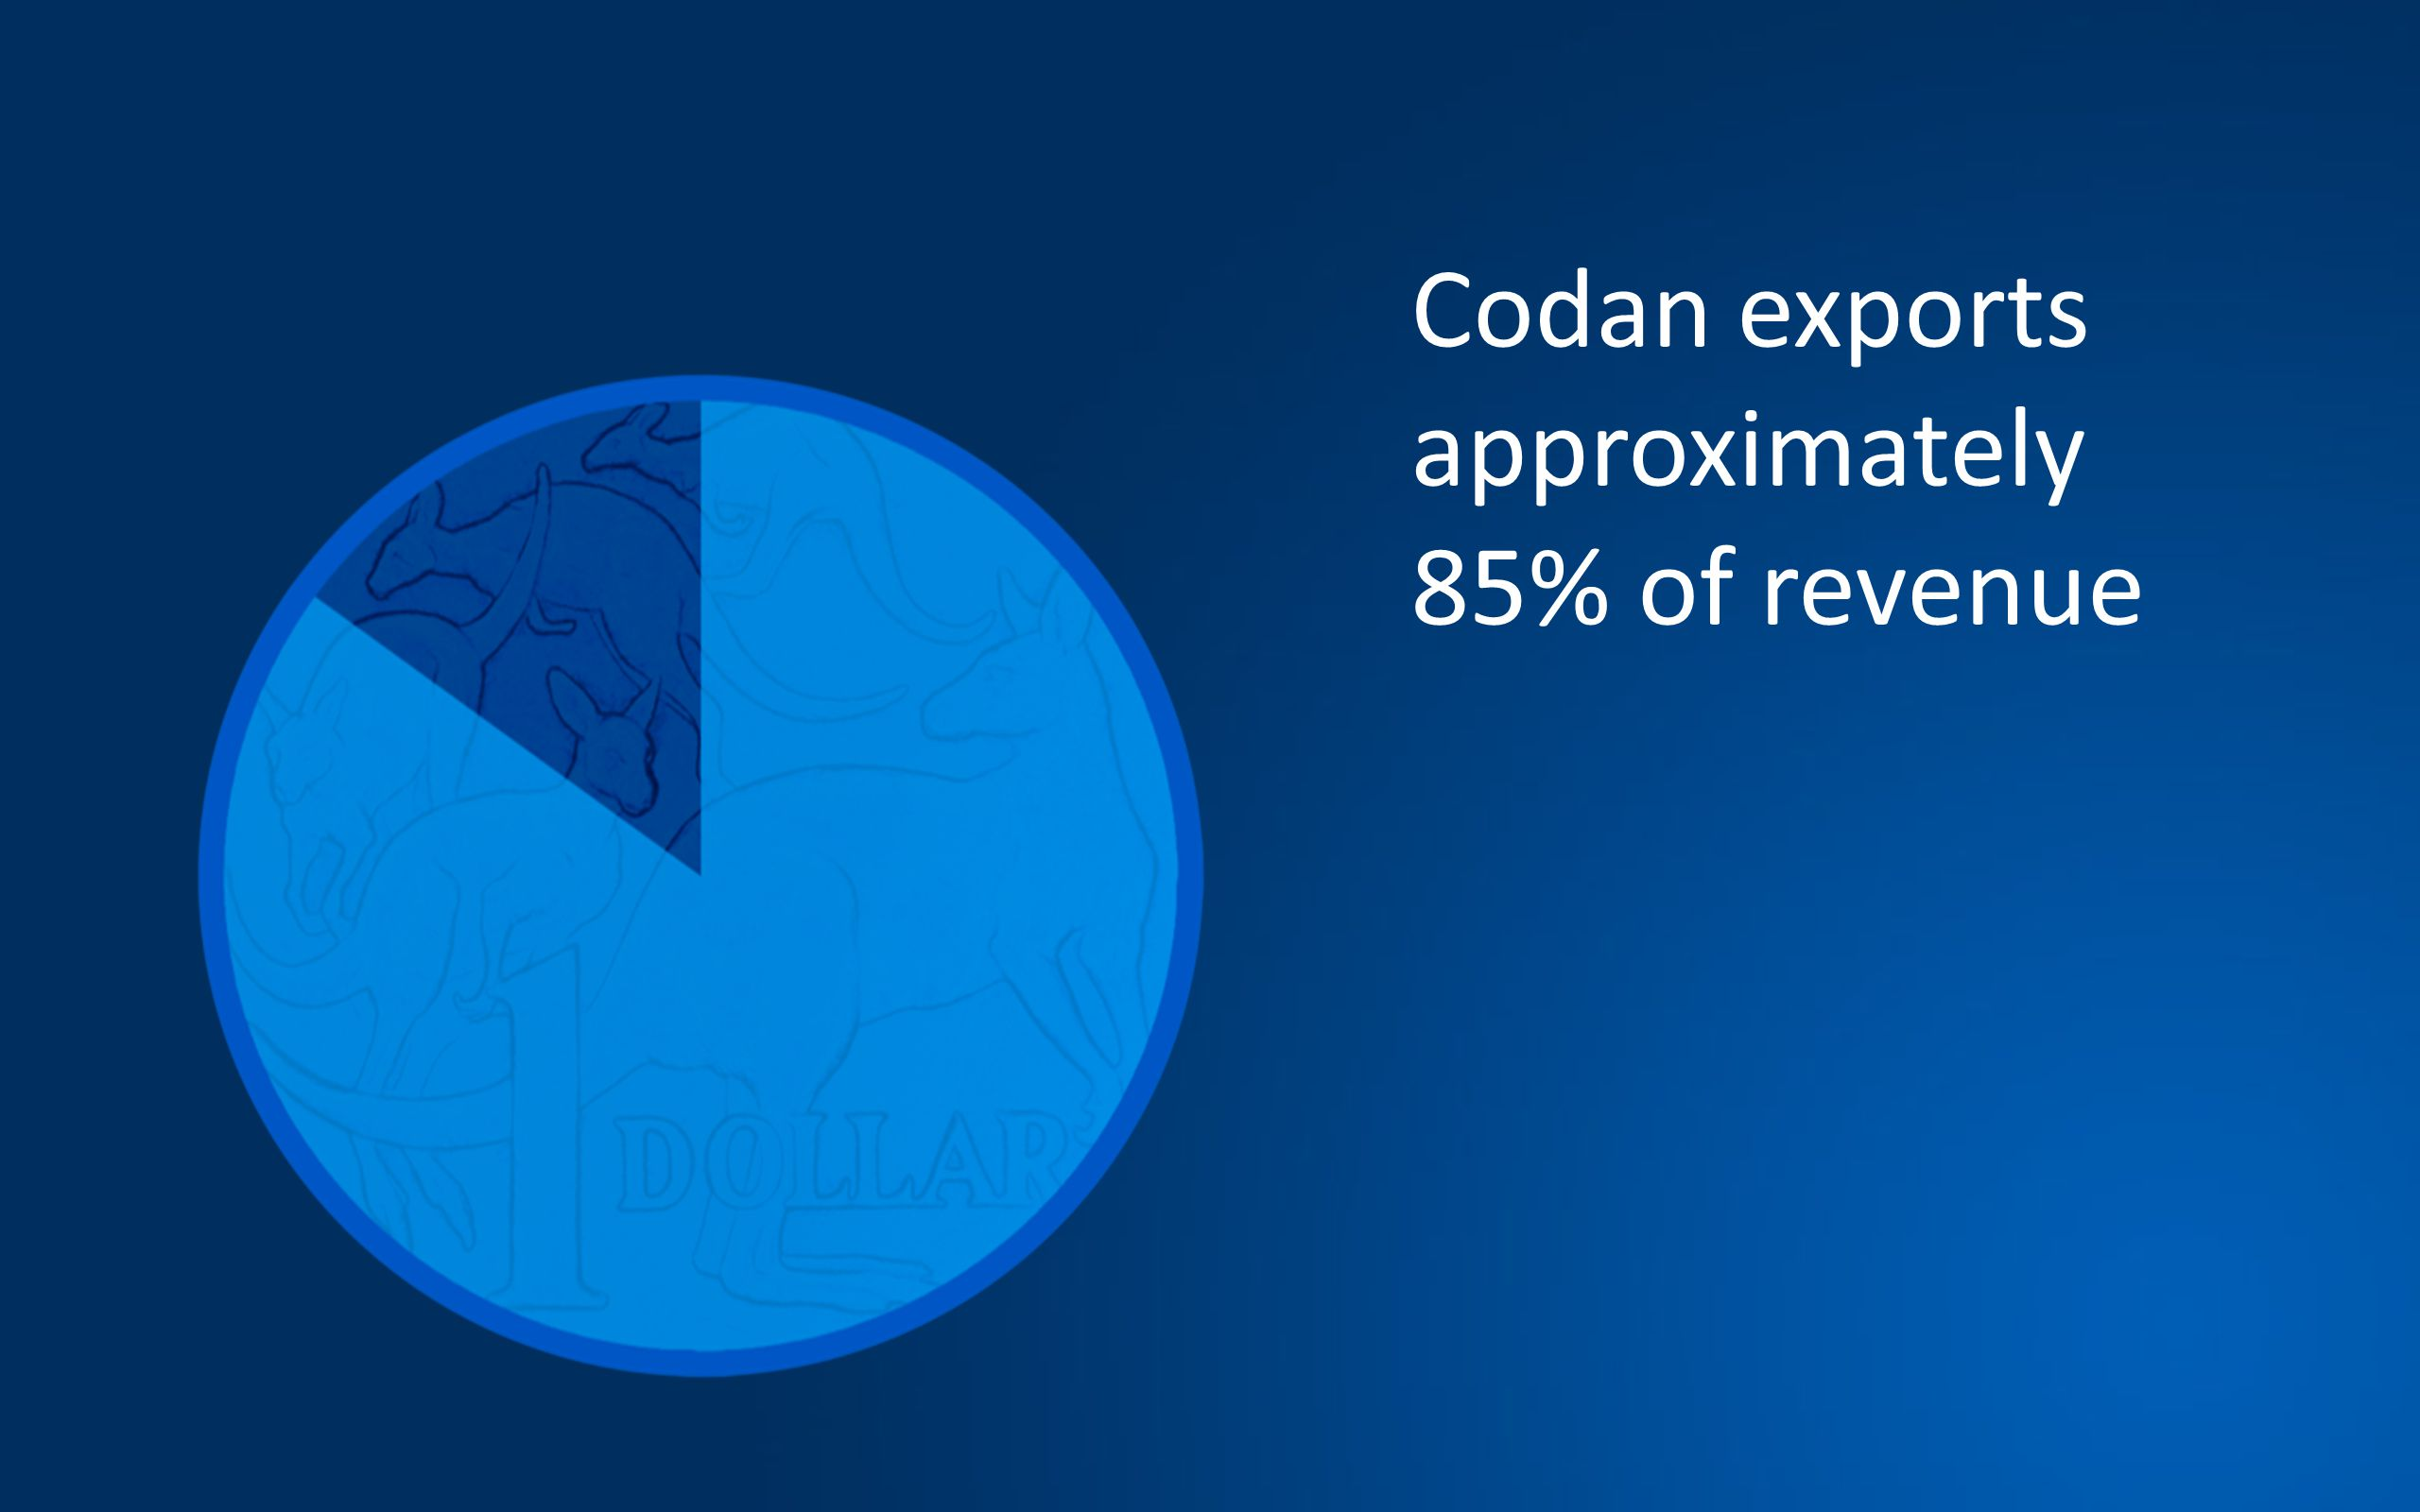 Codan exports approximately 85% of revenue